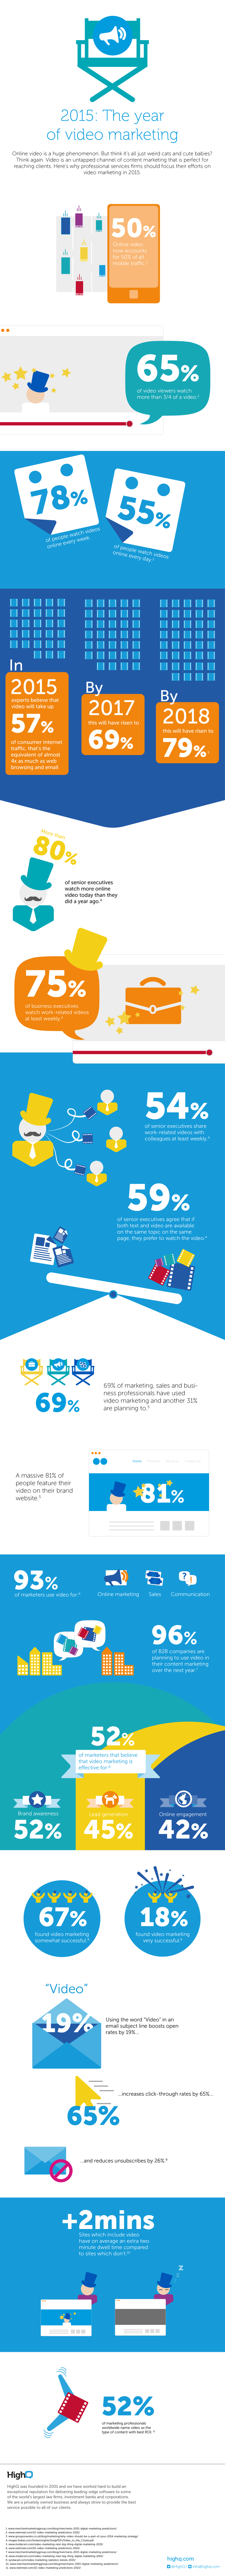 2015: The Year of Video Marketing #infographic